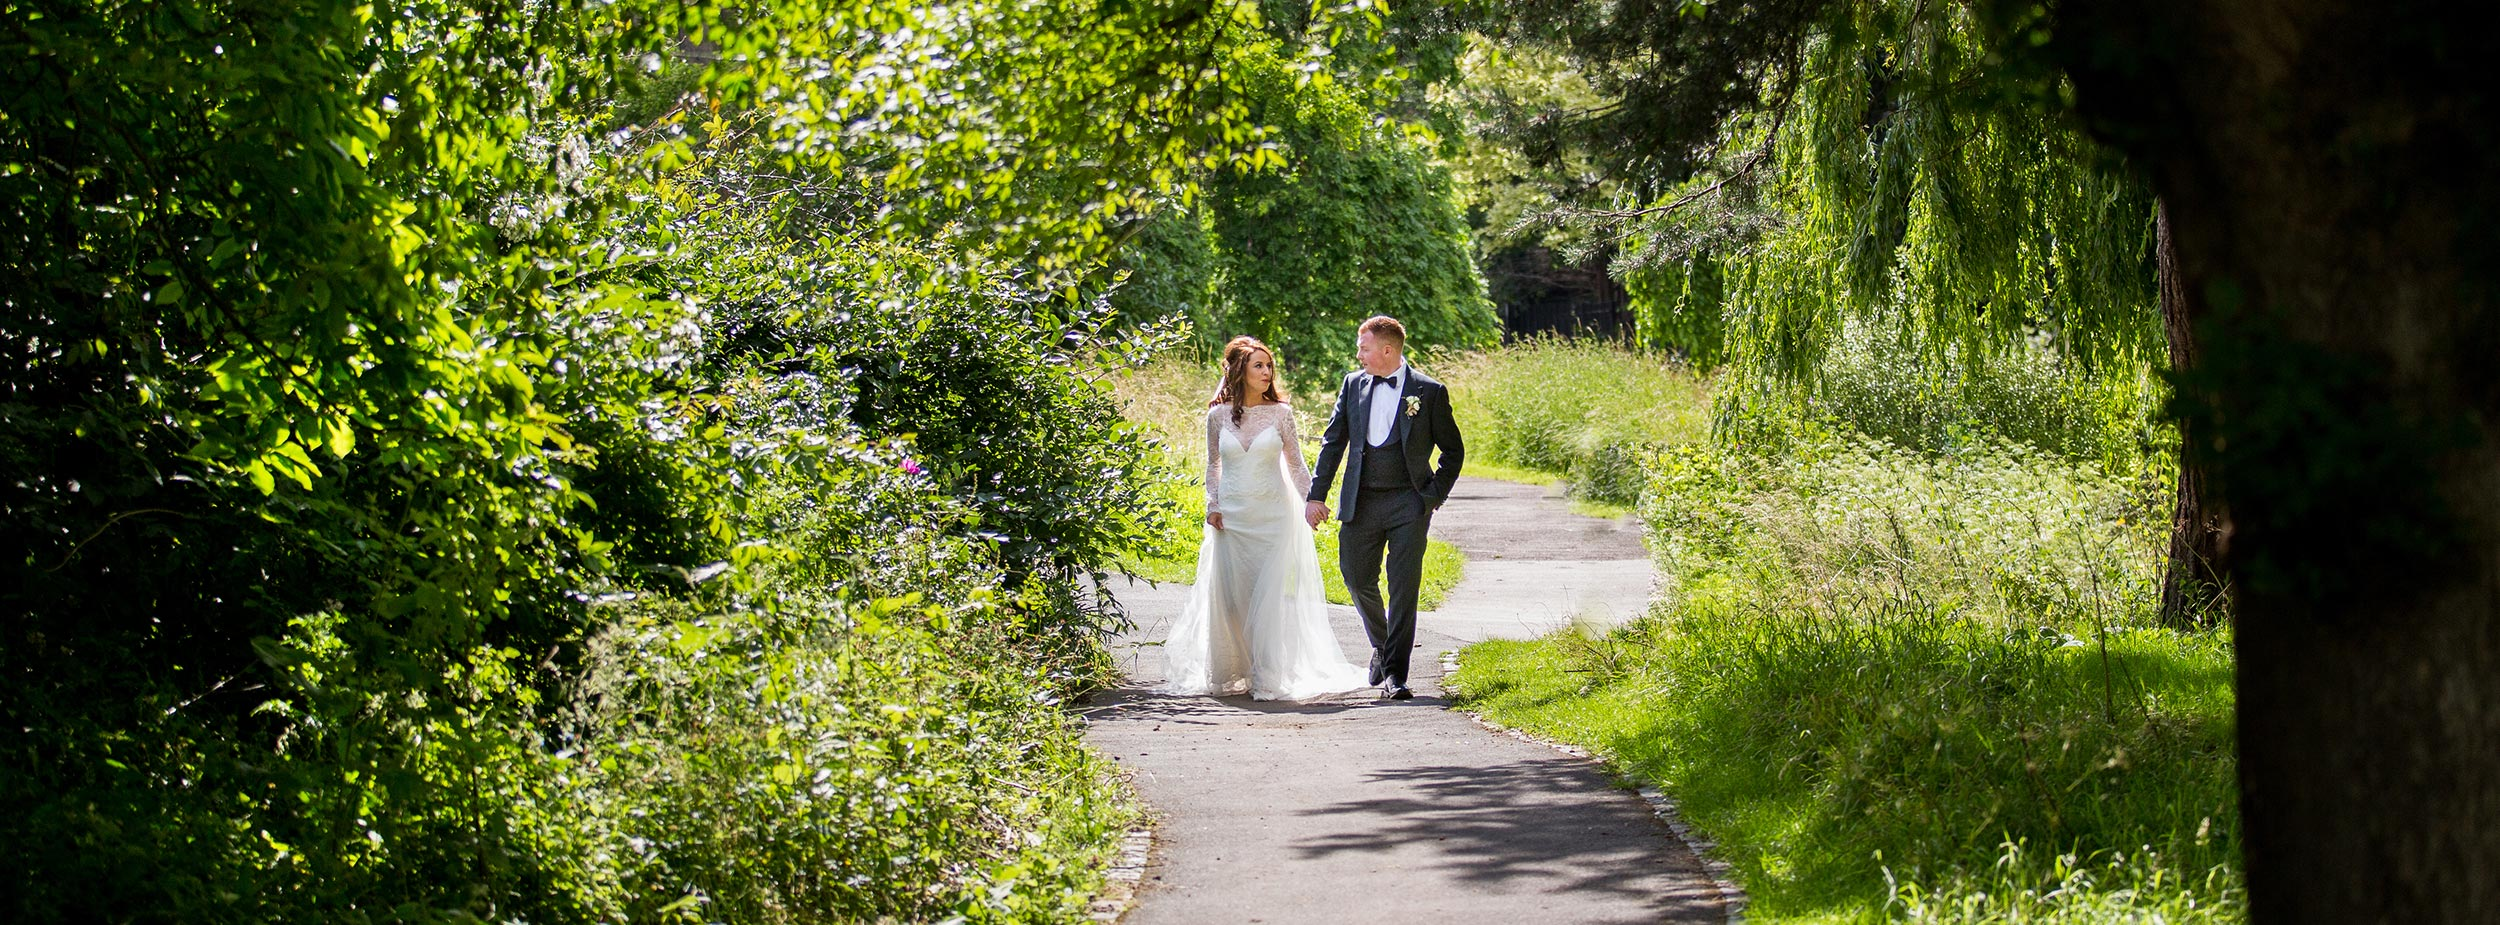 Wedding Photographer Mottingham Bromley Greenwich